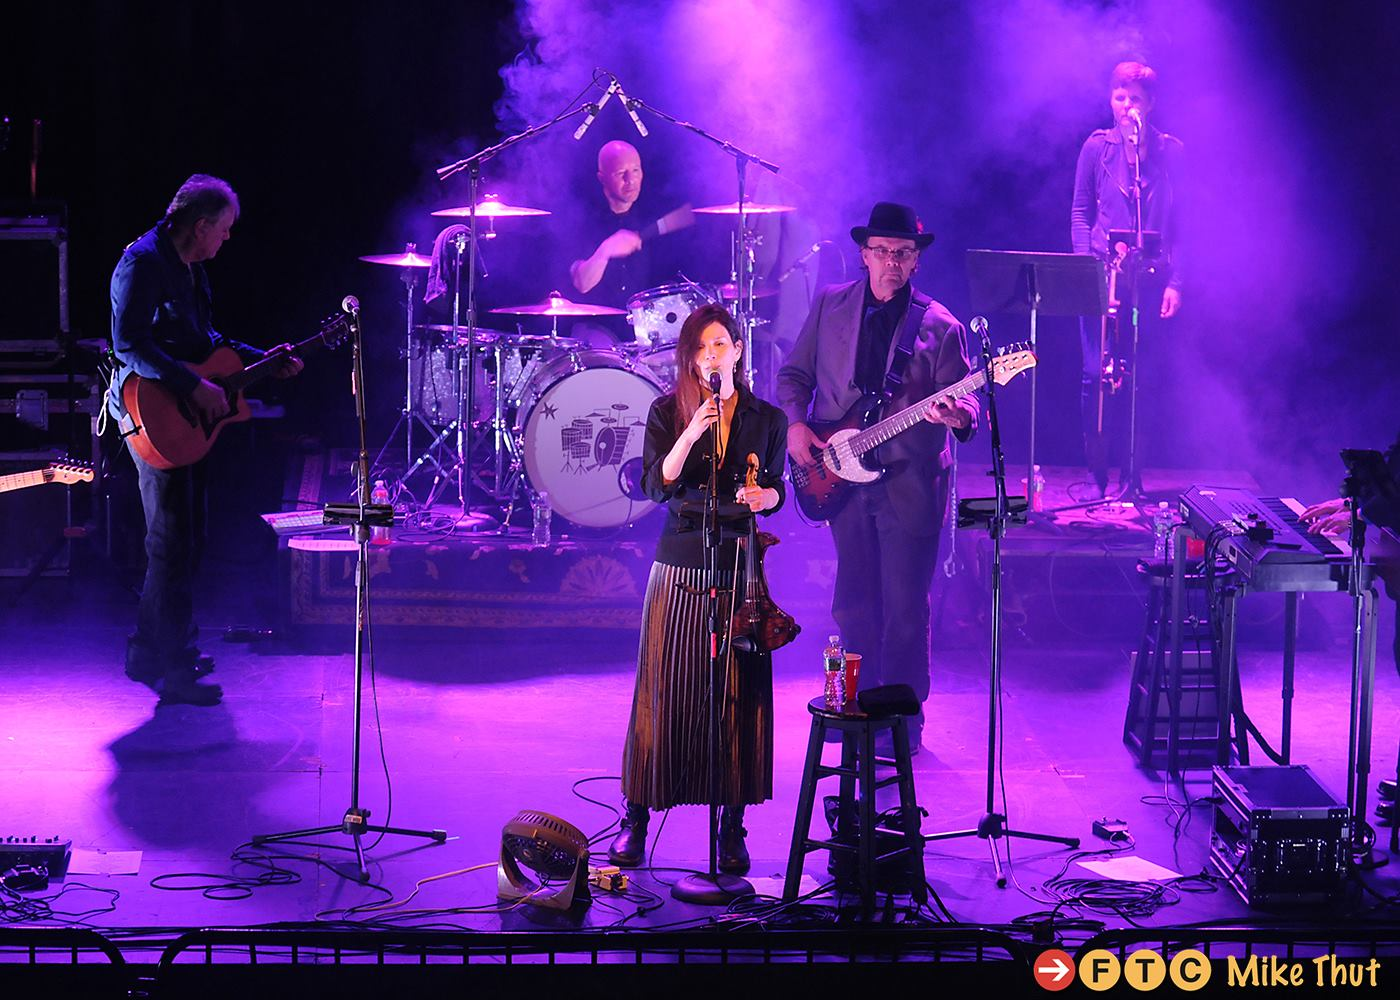 Palace Theater In The Dells 10 000 Maniacs